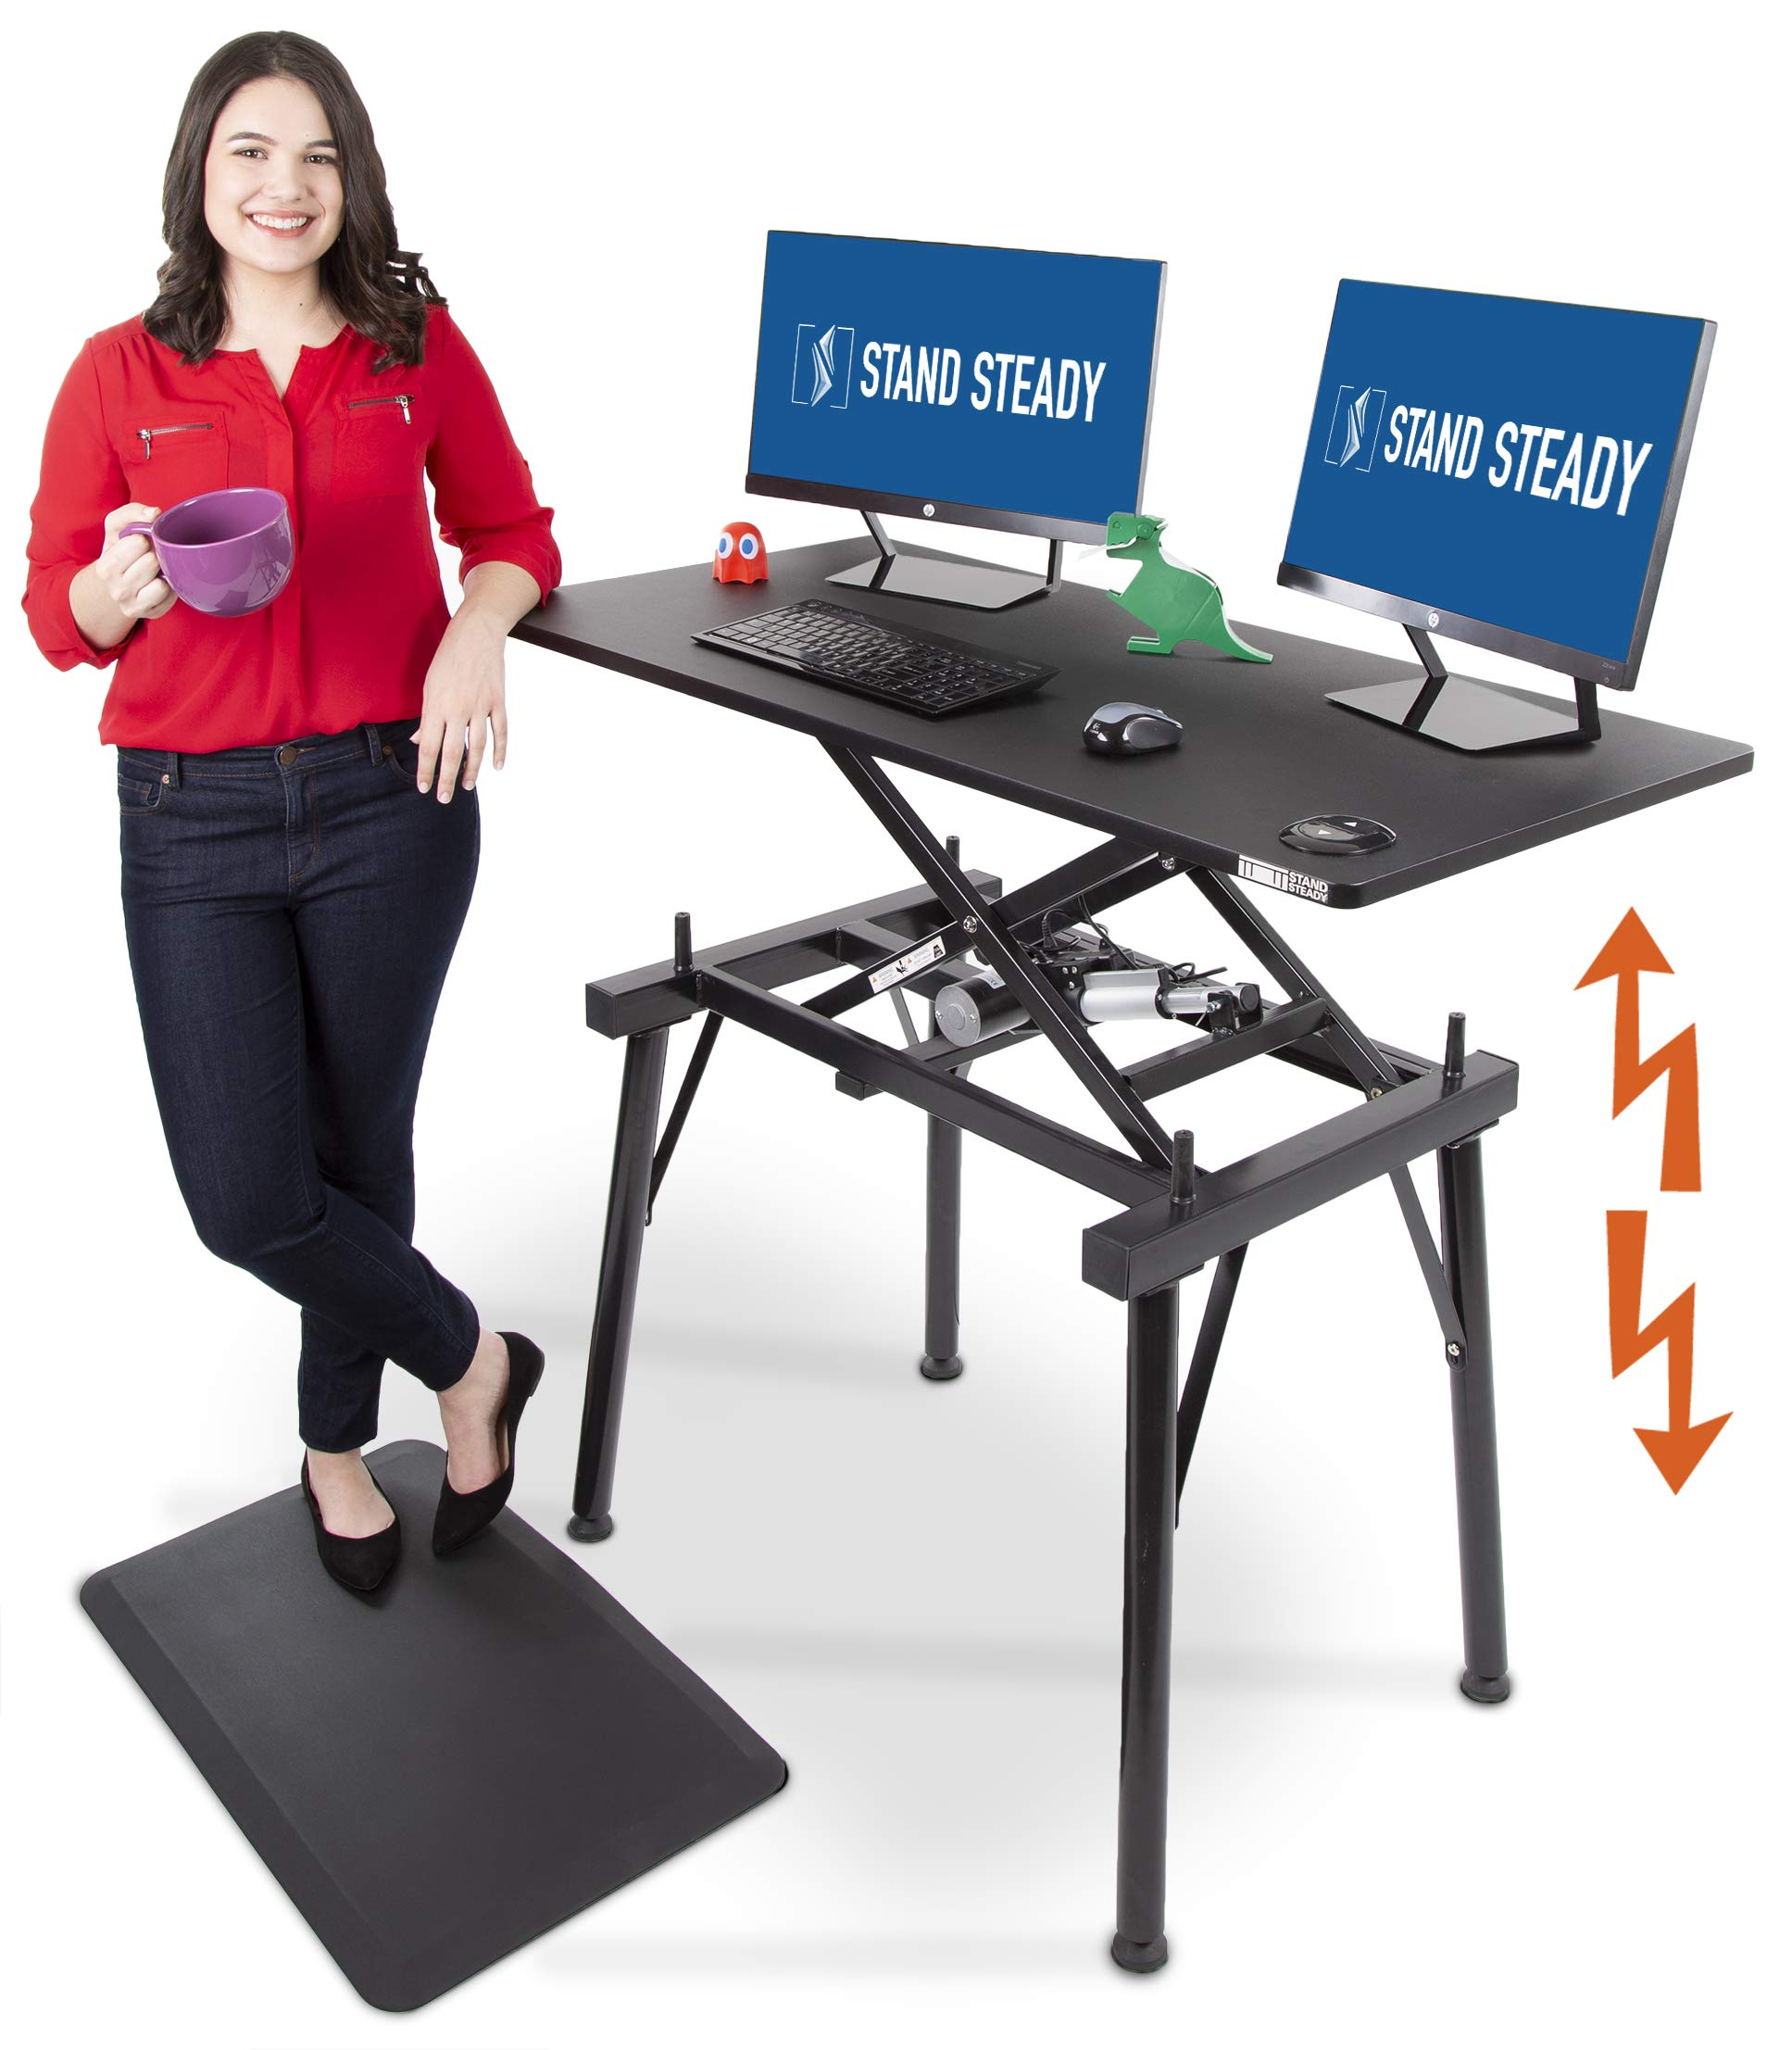 Stand Steady TranzForm - Electric Standing Desk - Transform Your Workspace - Switch from Sit to Stand with The Push of a Button - 48 Inch Full Size Stand Up Desk Perfect for Office or Home by Stand Steady